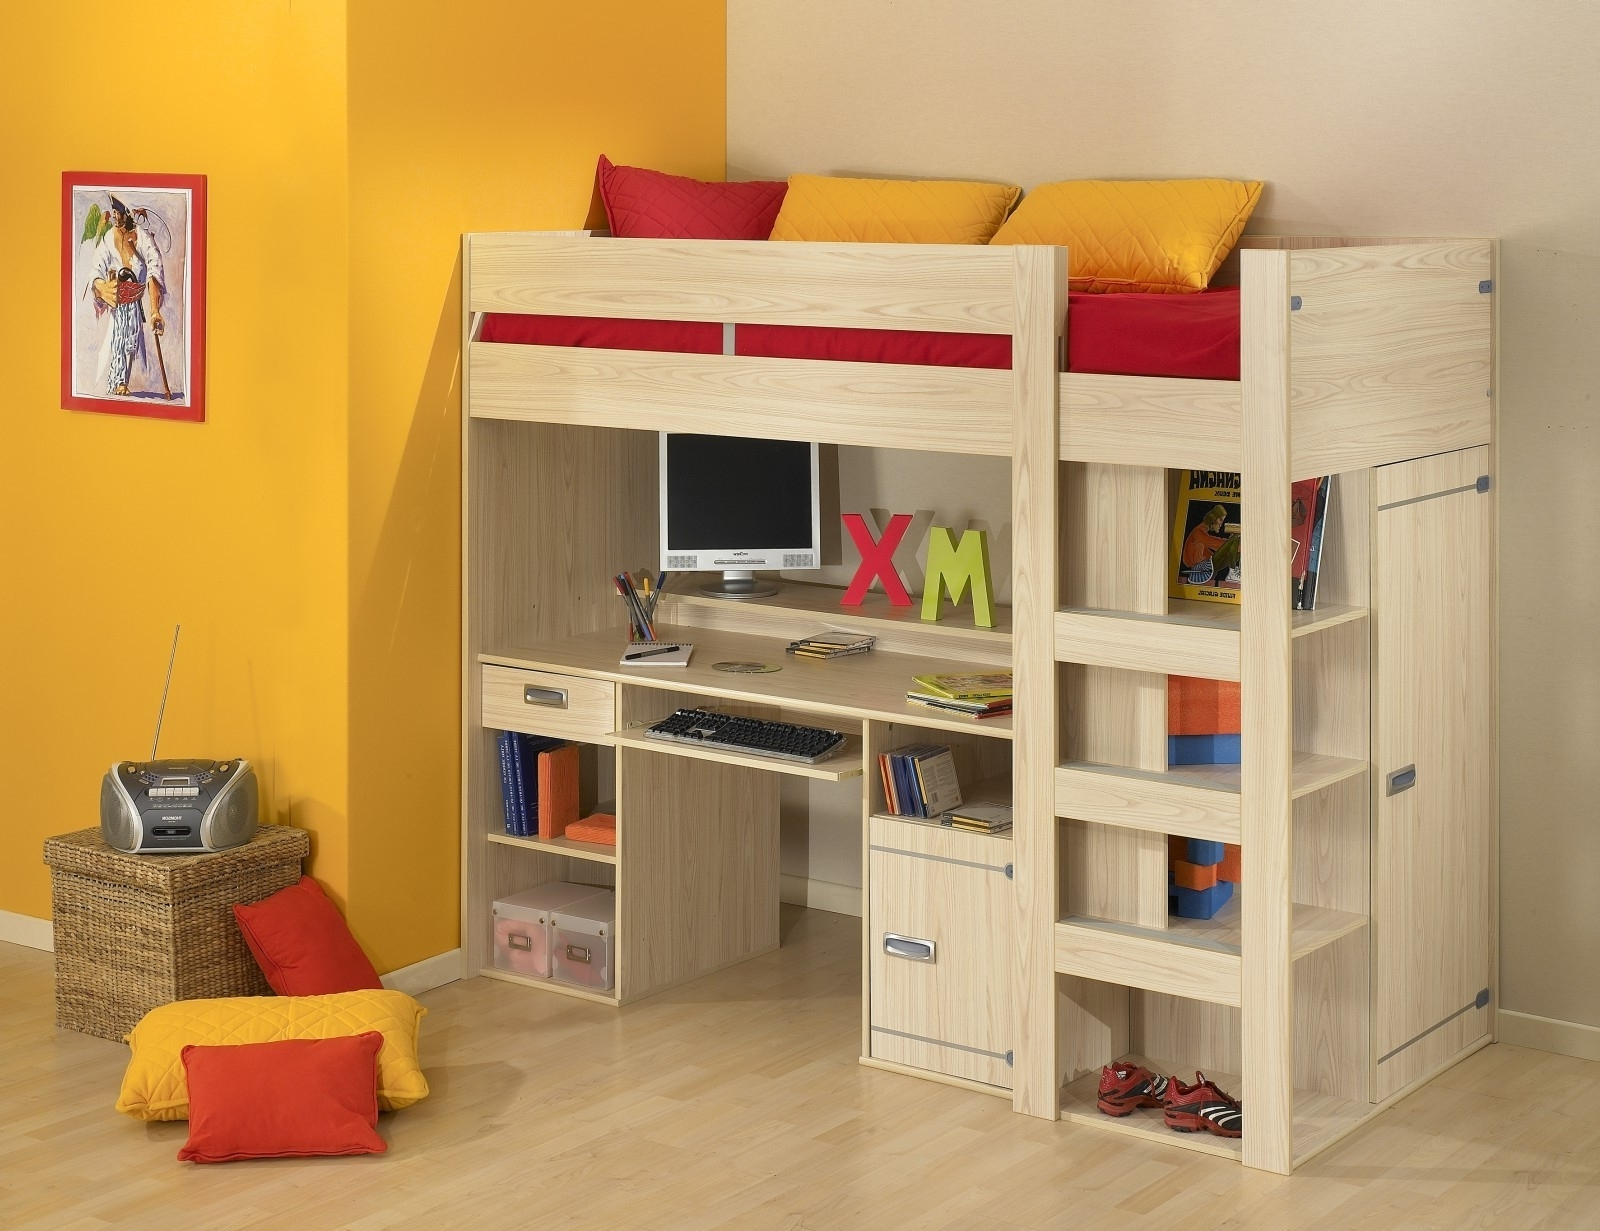 Innovative Canwood Loft Bed for Your Kids Bedroom Ideas: Inspiring Canwood Junior Loft Bed White | Nice Canwood Loft Bed Design